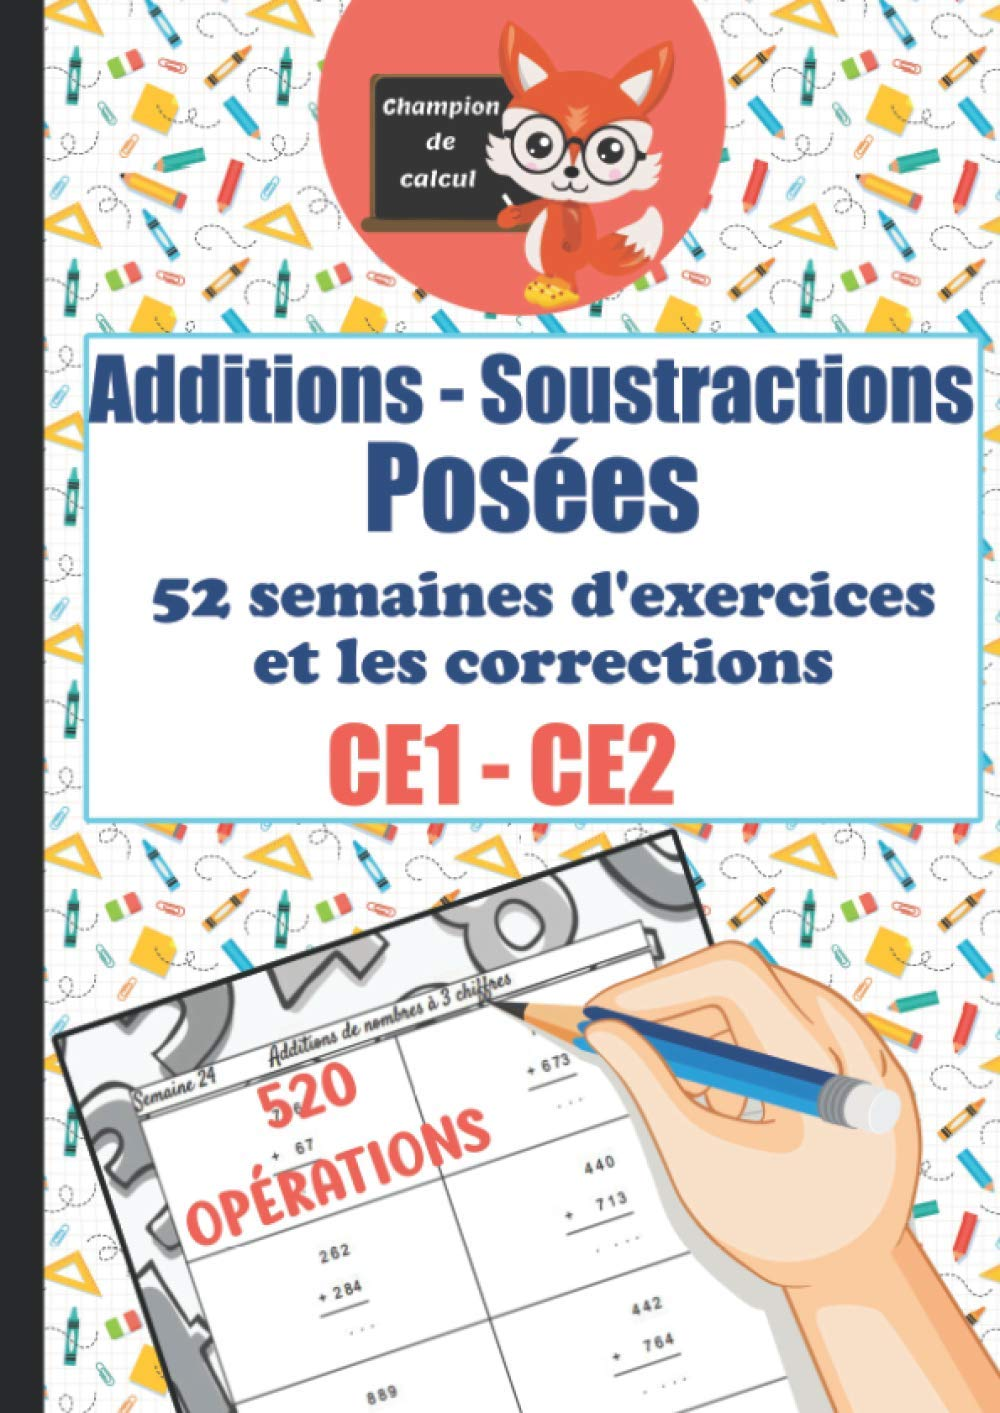 Additions Soustractions Posees Ce1 Ce2 52 Semaines D Exercices Et Les Corrections 520 Operations Champion De Calcul Cahier D Exercices De Calcul Ce1 Ce2 French Edition Gambou Jacques Du